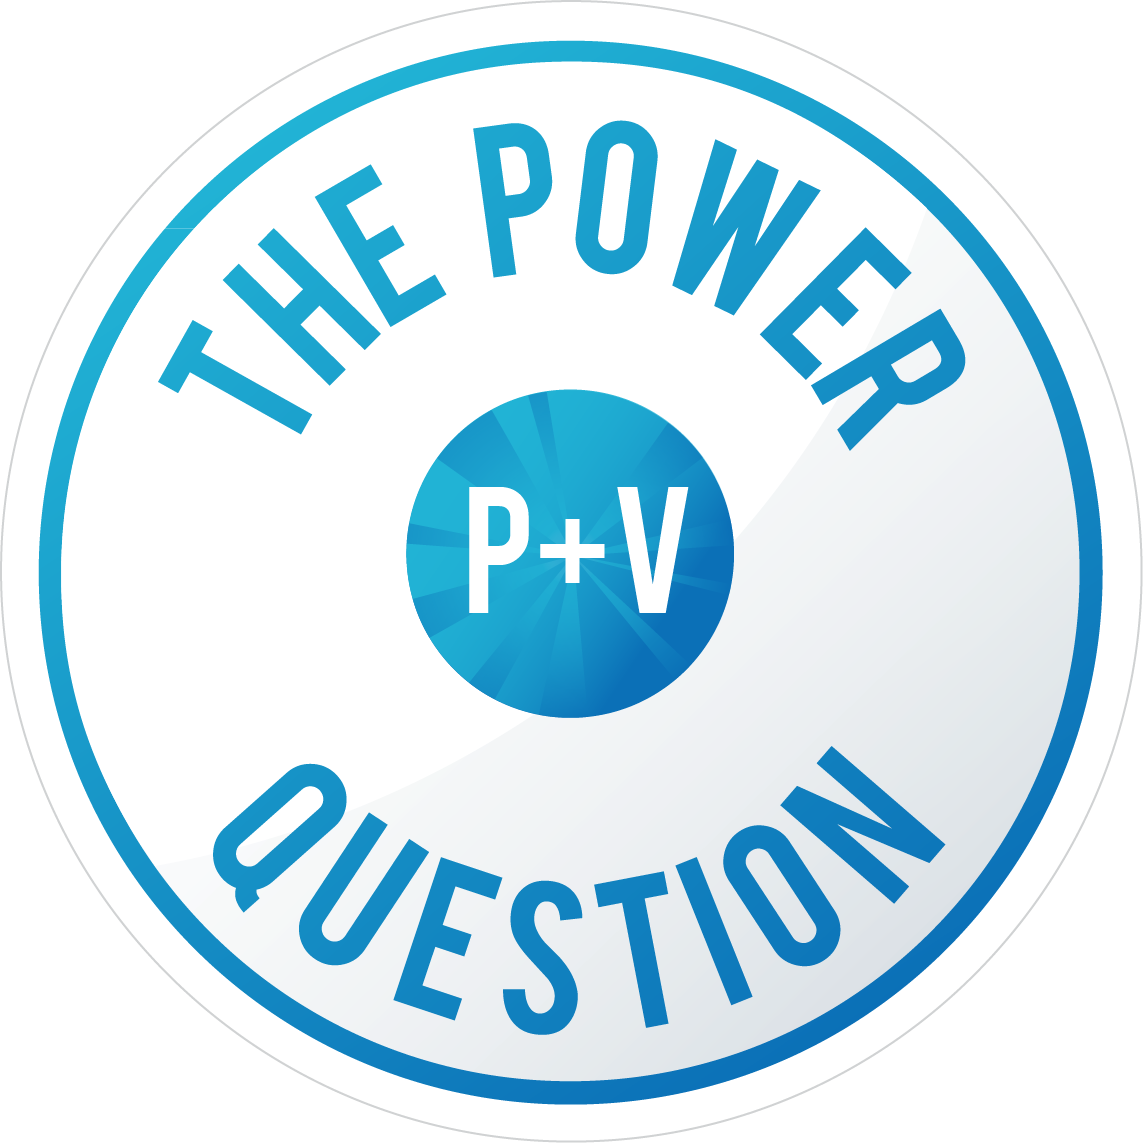 4. The Power Question